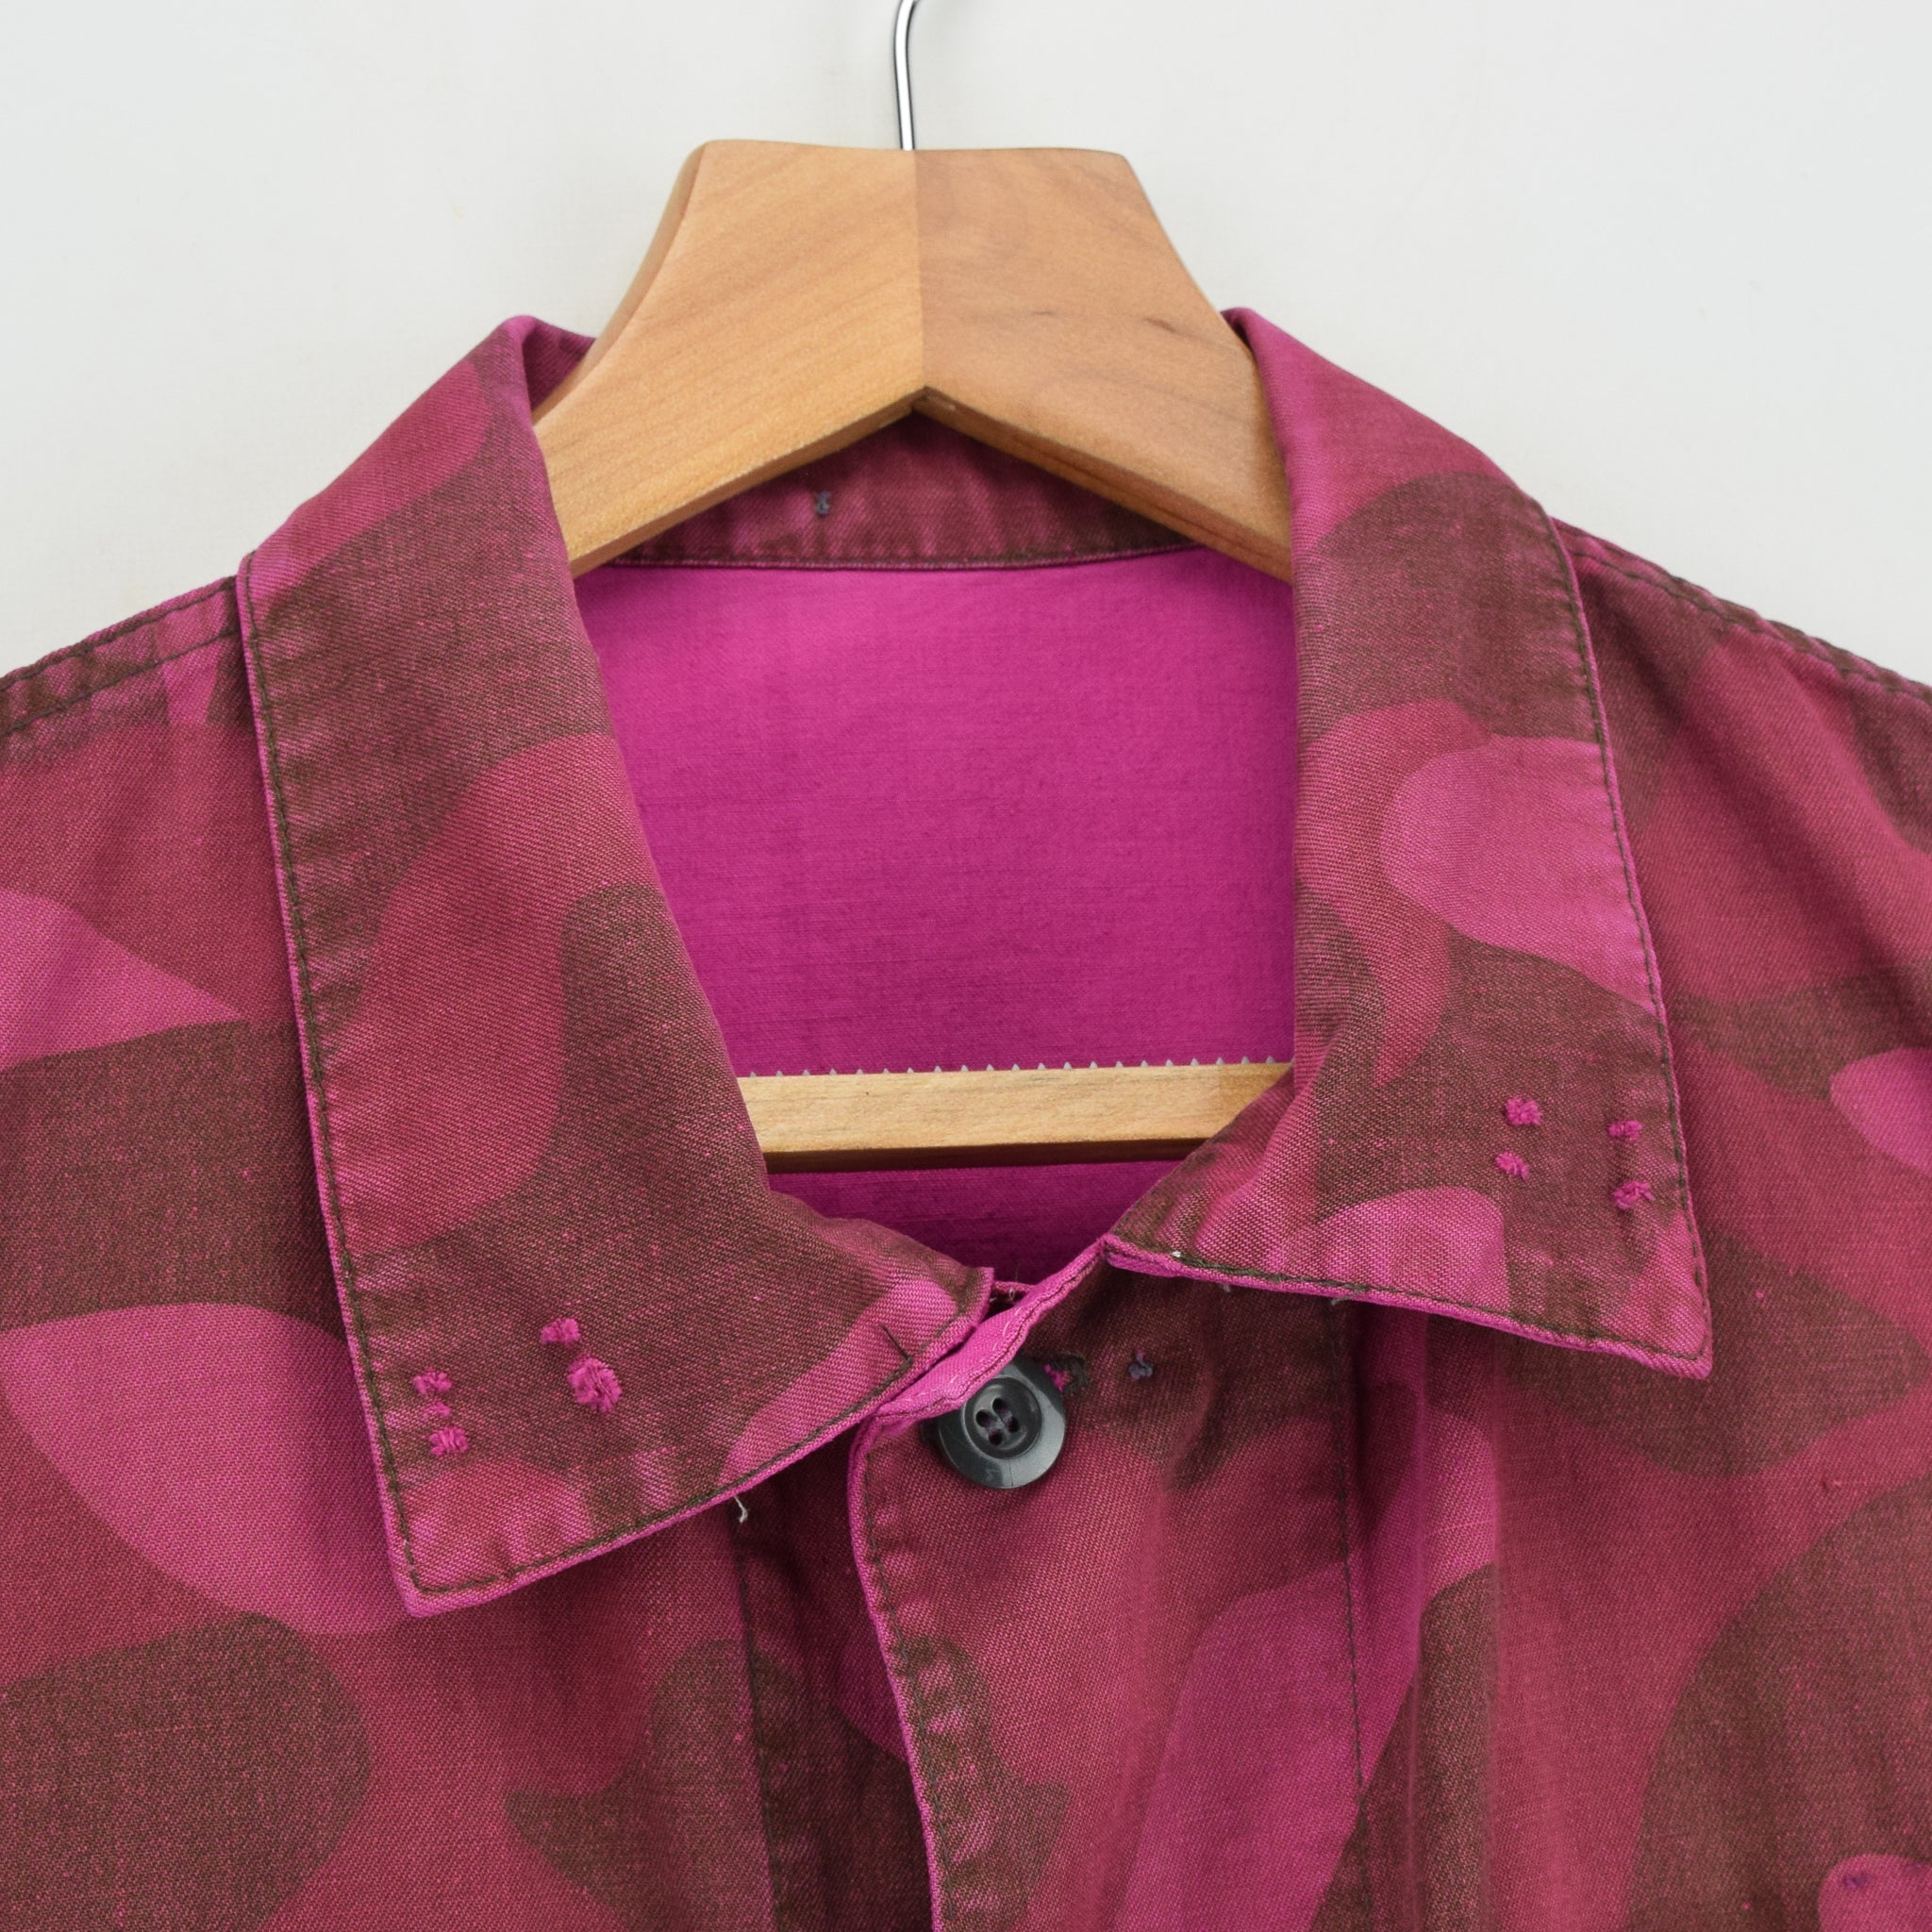 Vintage 70s Military Finnish Army Pink Overdyed Camo Mountain Field Jacket M collar